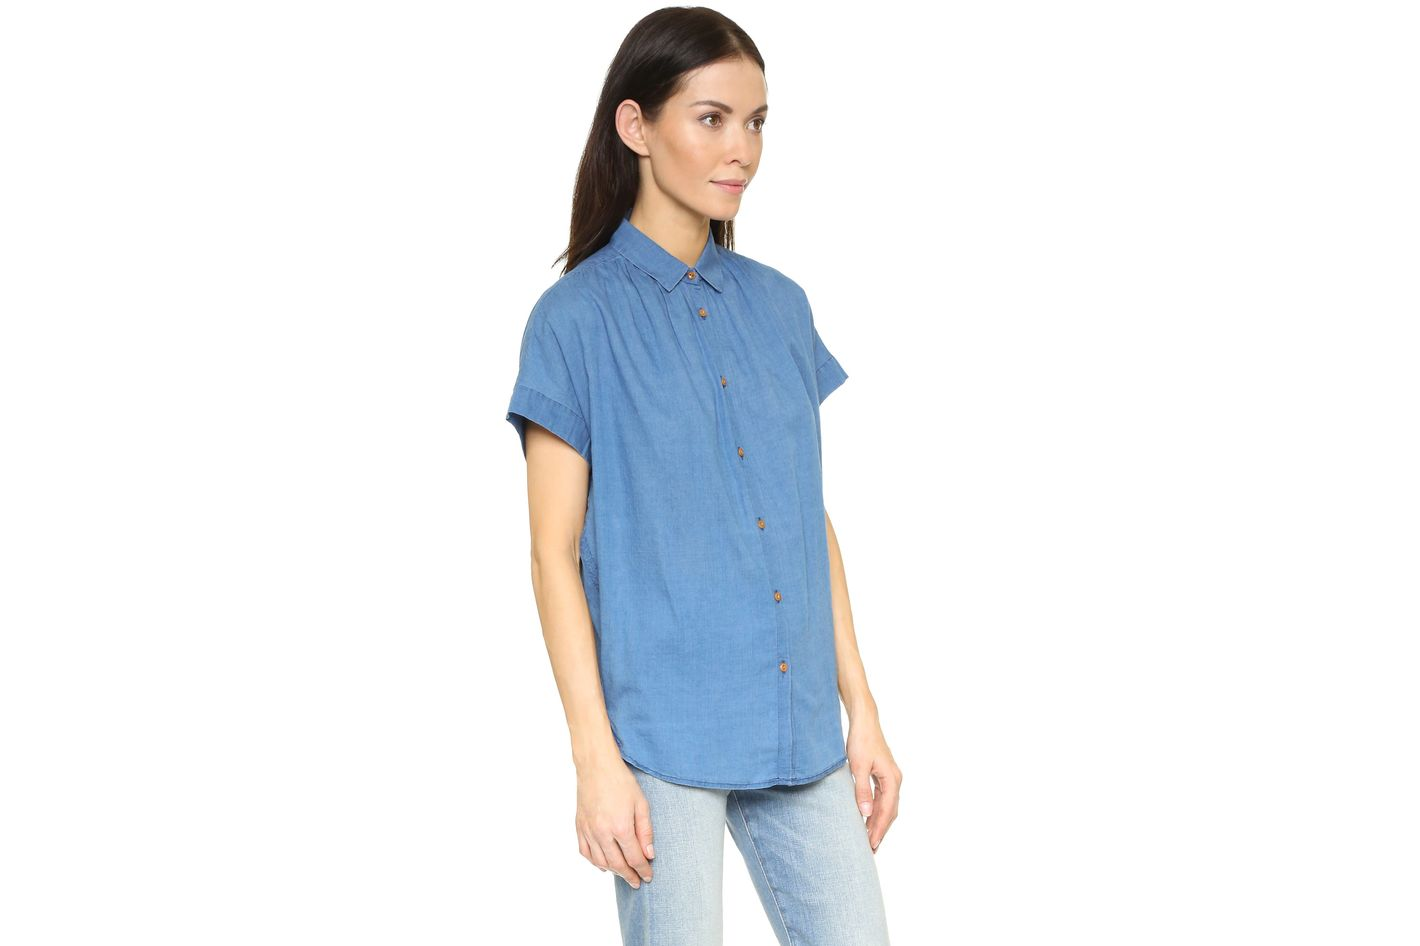 Madewell Boxy Side-Seam Top